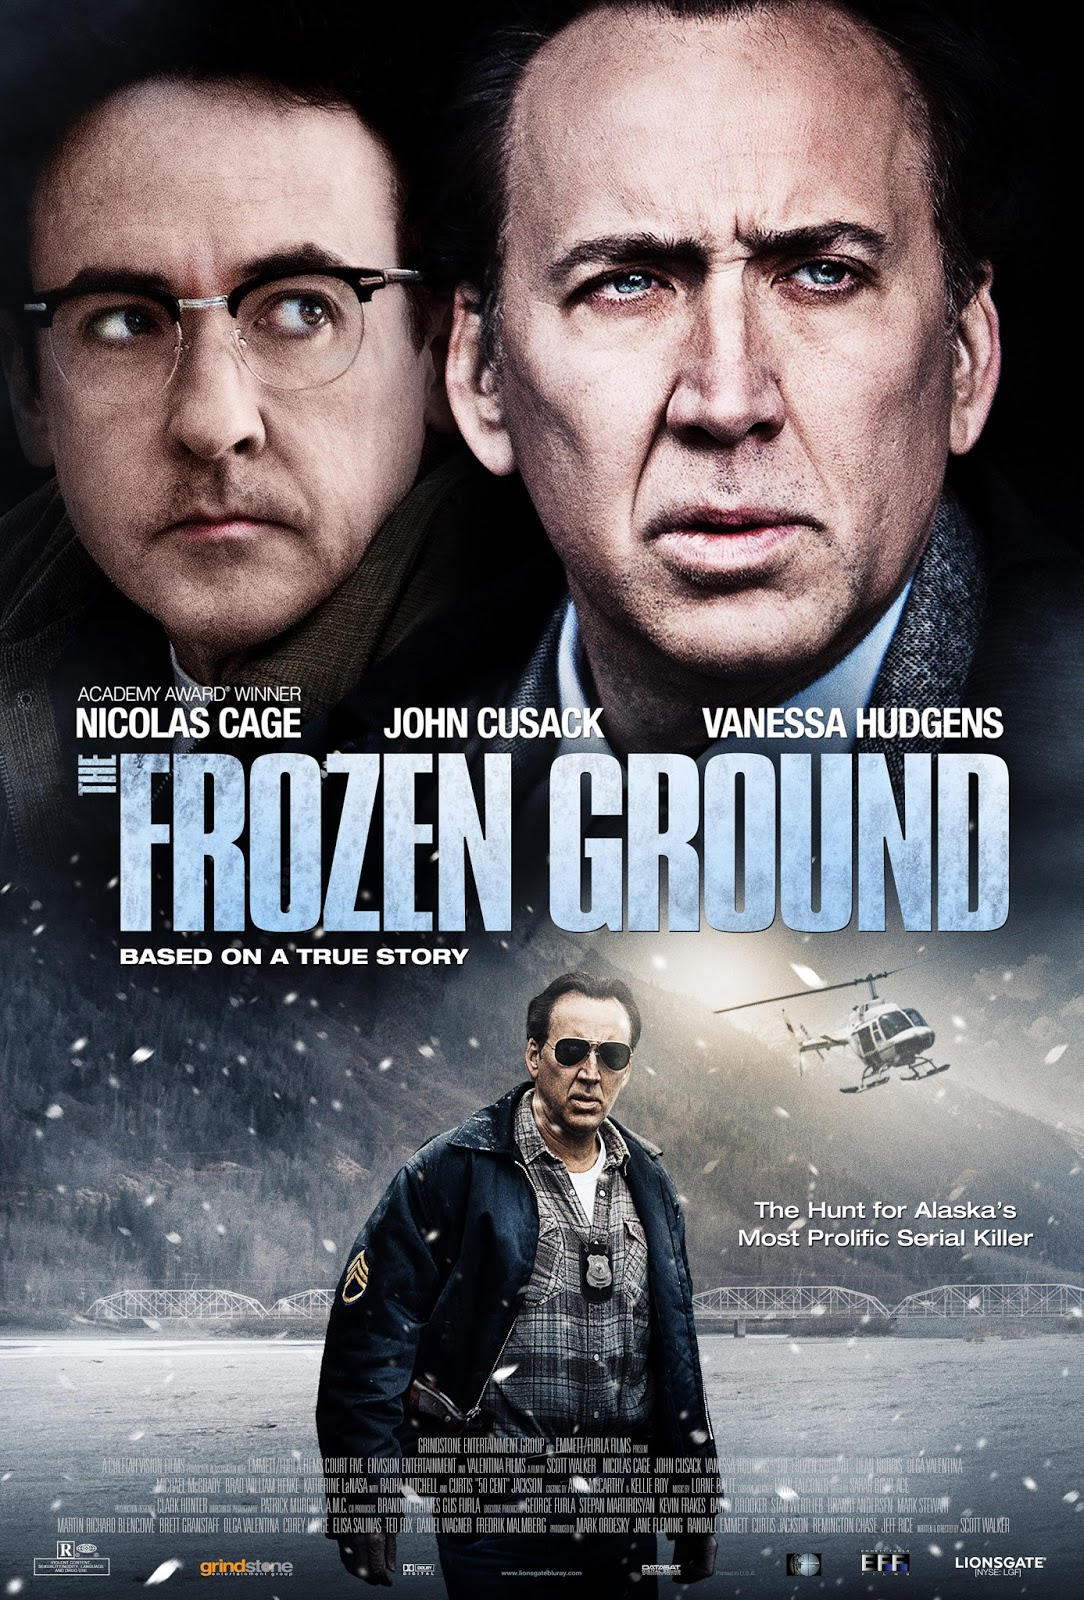 http://4.bp.blogspot.com/-FZu-FCAs-OU/UiSsGjWnqwI/AAAAAAAACaQ/HCF2nm_LW6Y/s1600/Frozen-Ground-Exclusive-Poster-HD1.jpg